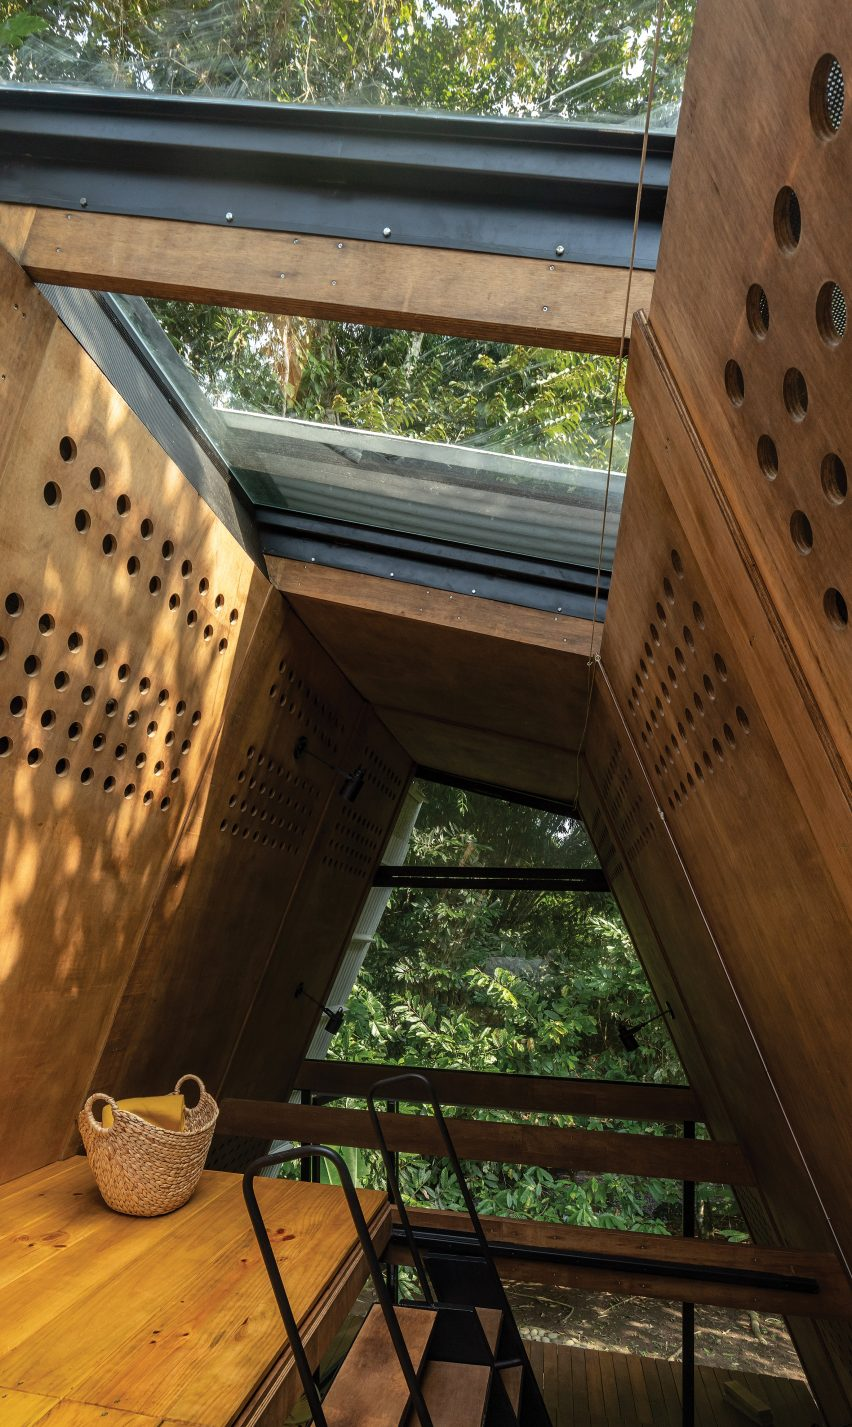 The upper level of the Huaira cabin by Diana Salvador and Javier Mera in Ecuador